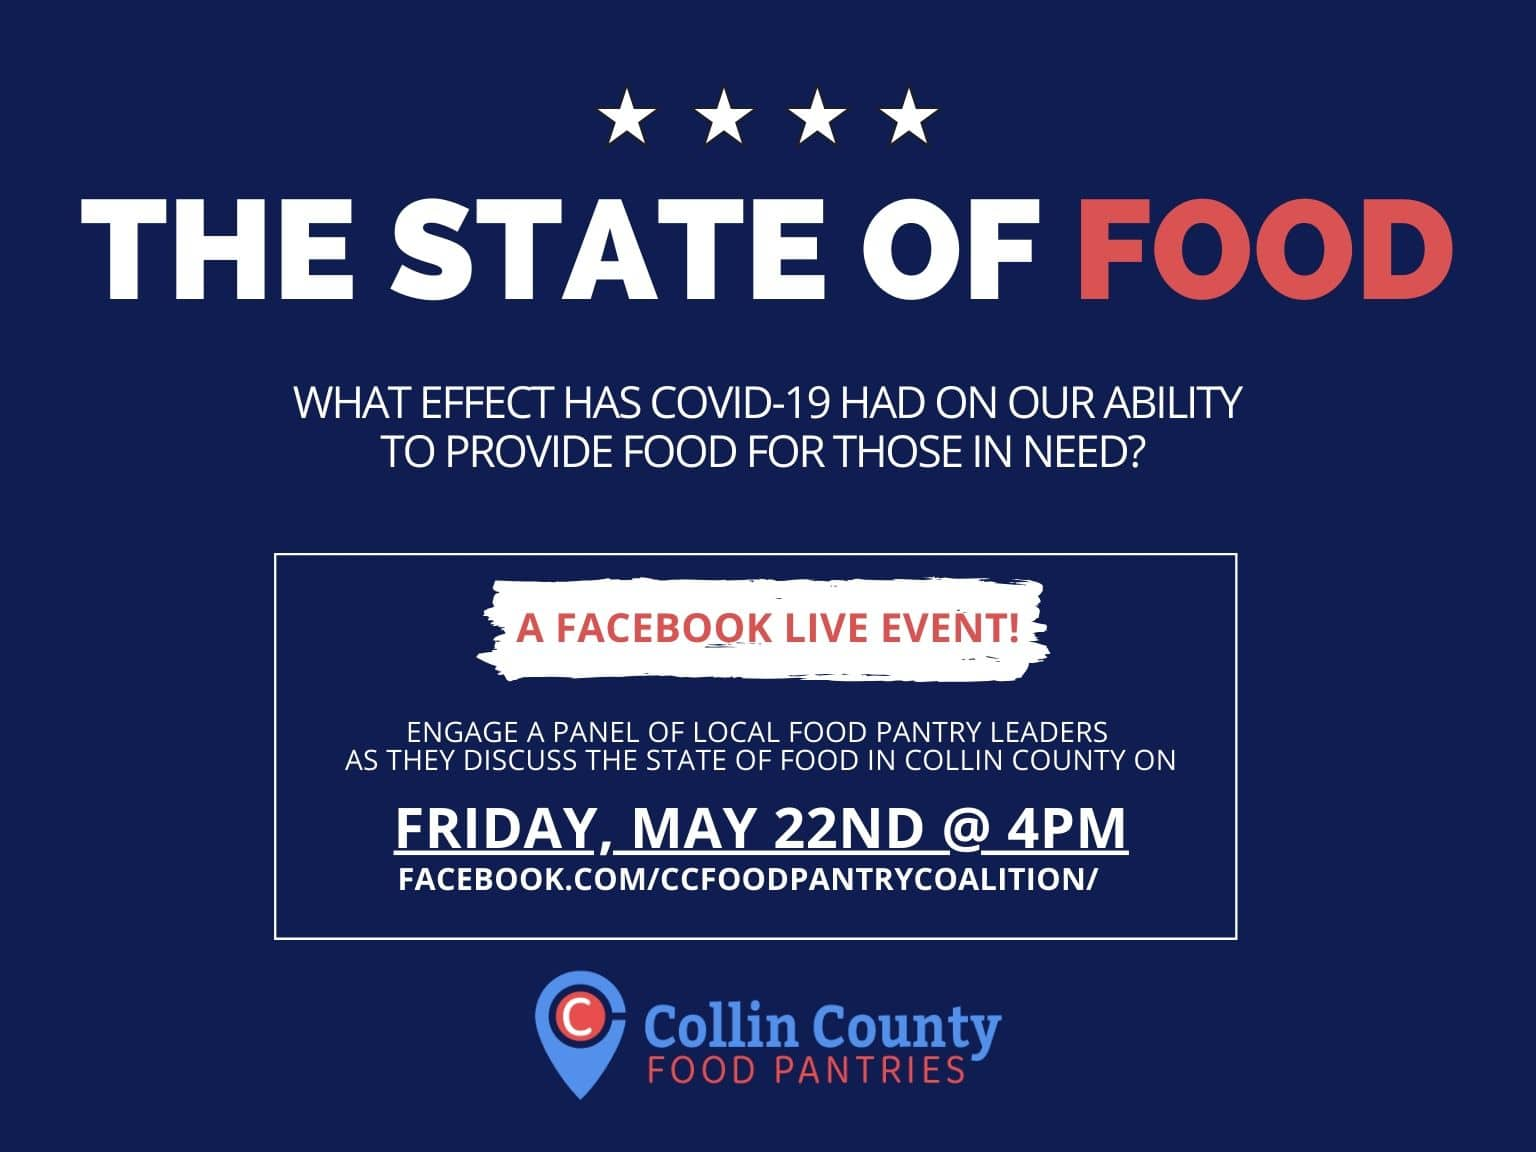 State of Food - A Facebook Live Event